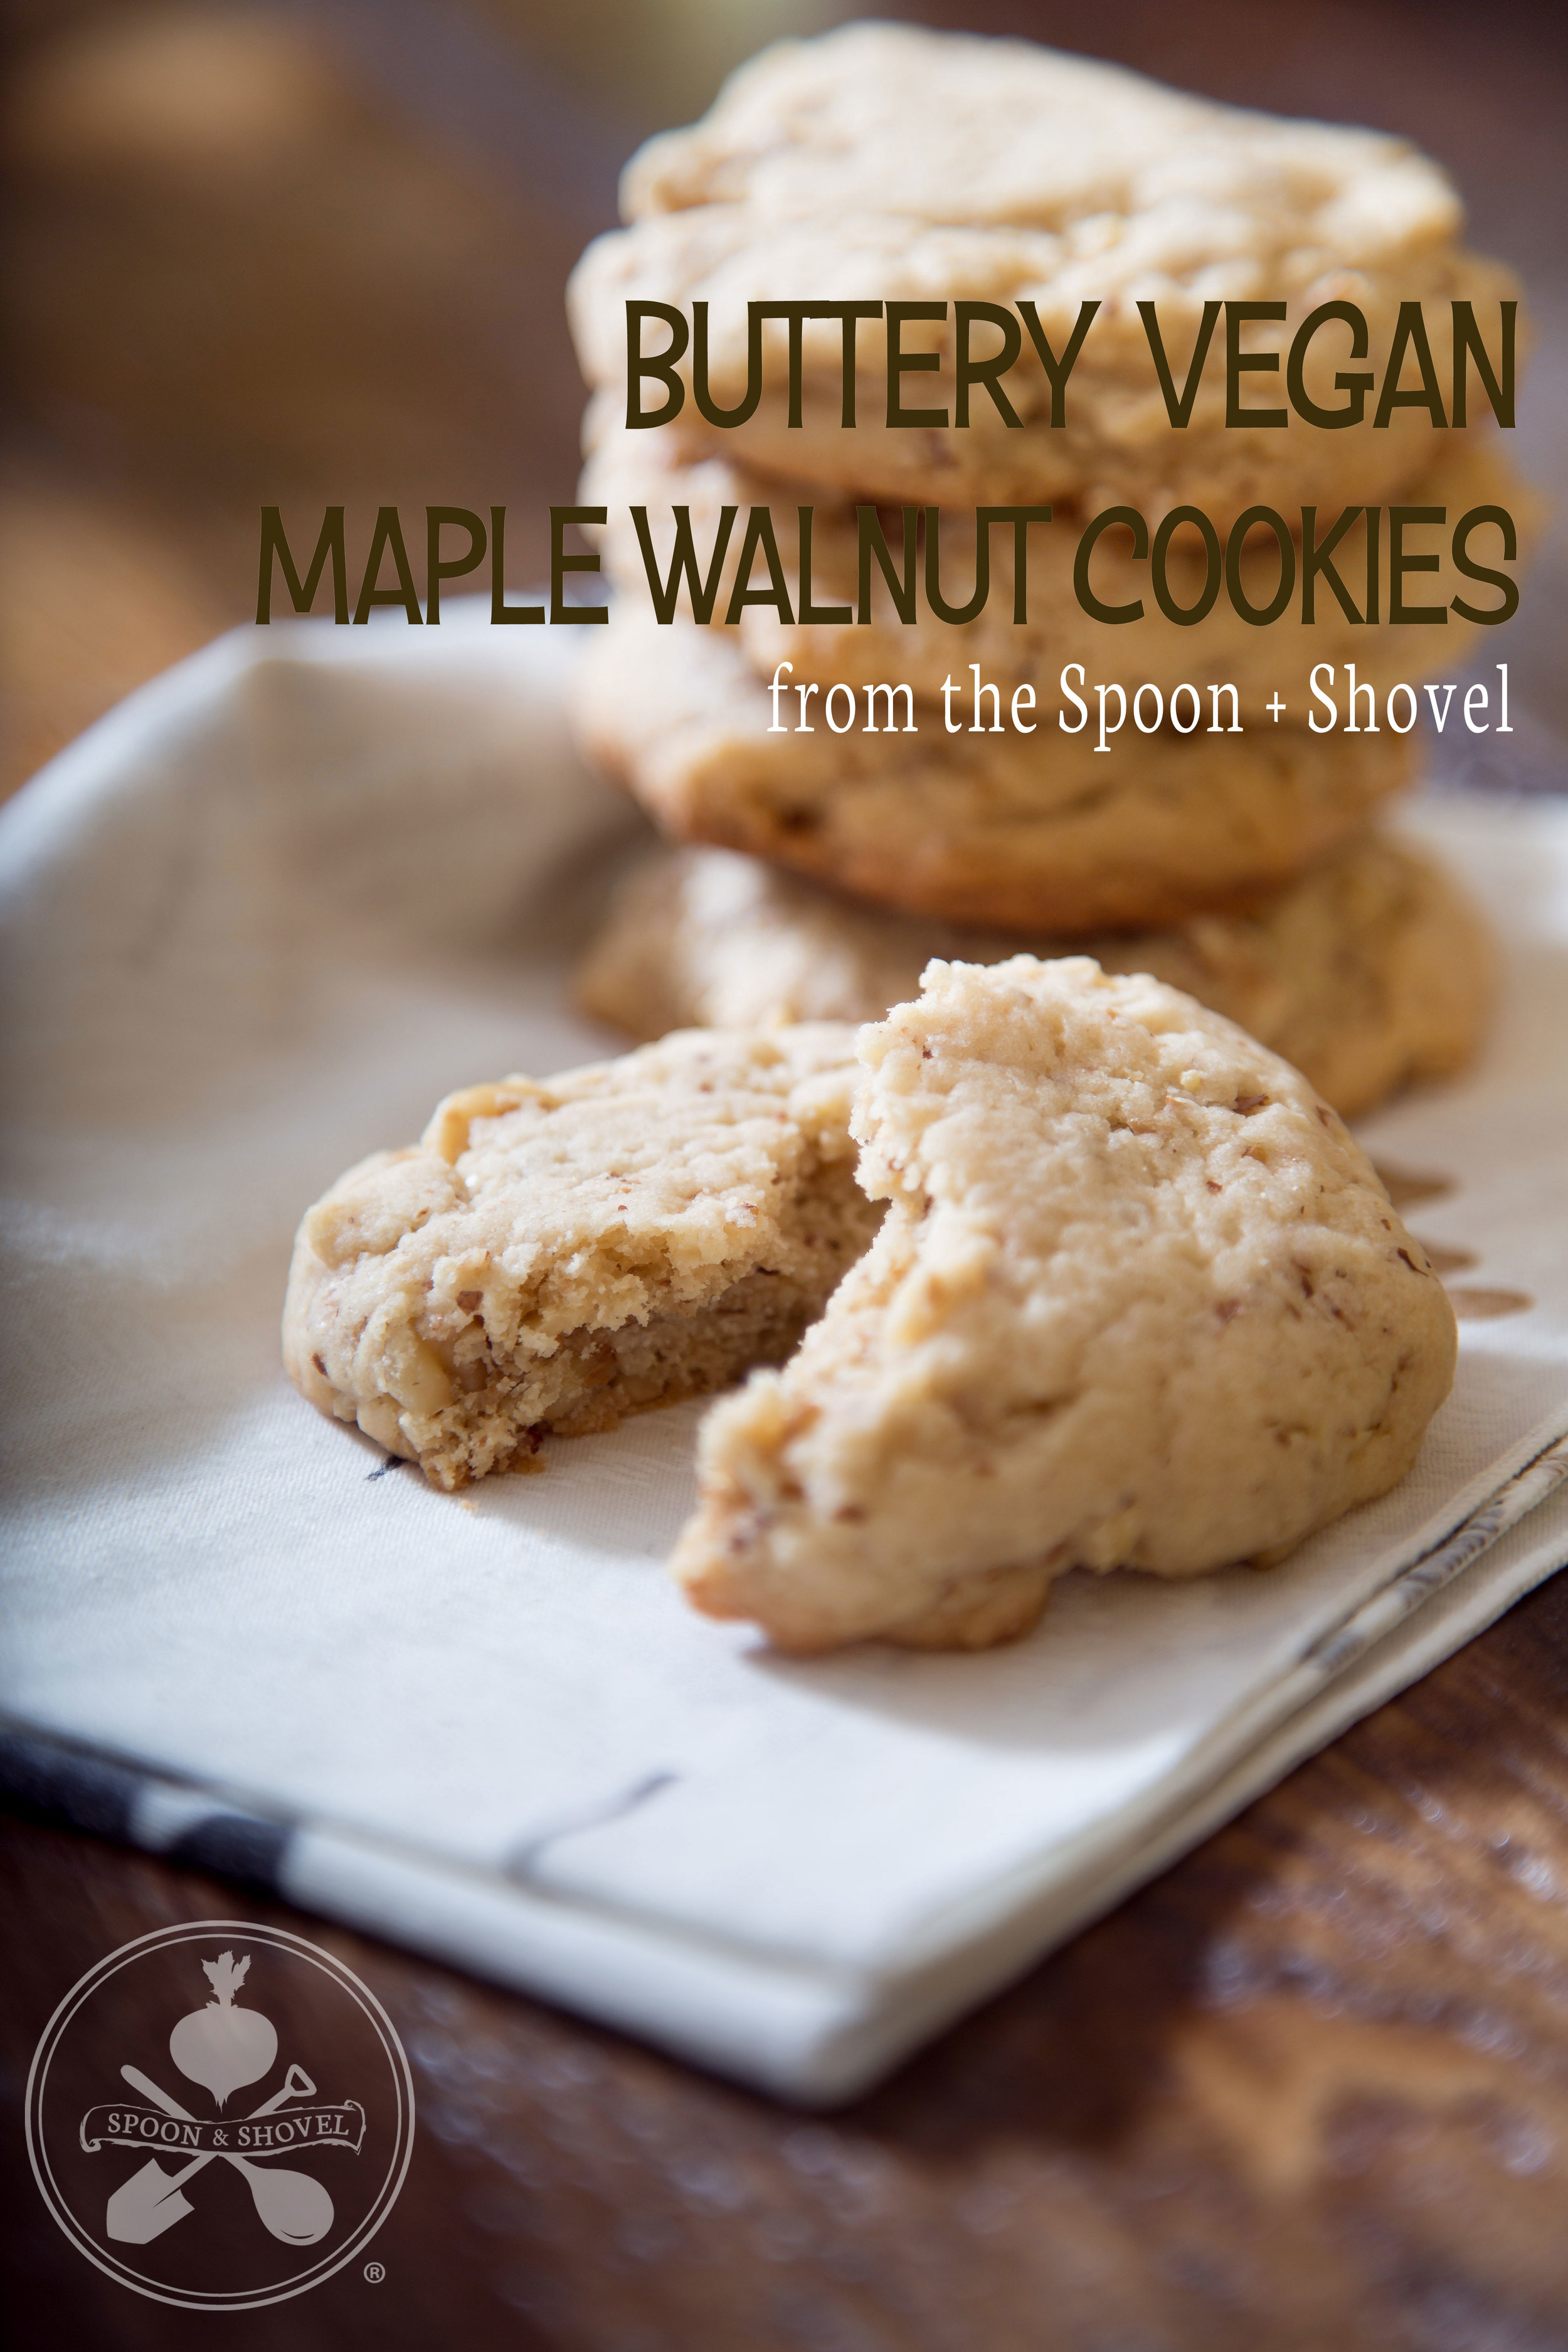 Buttery vegan maple walnut cookies from The Spoon + Shovel